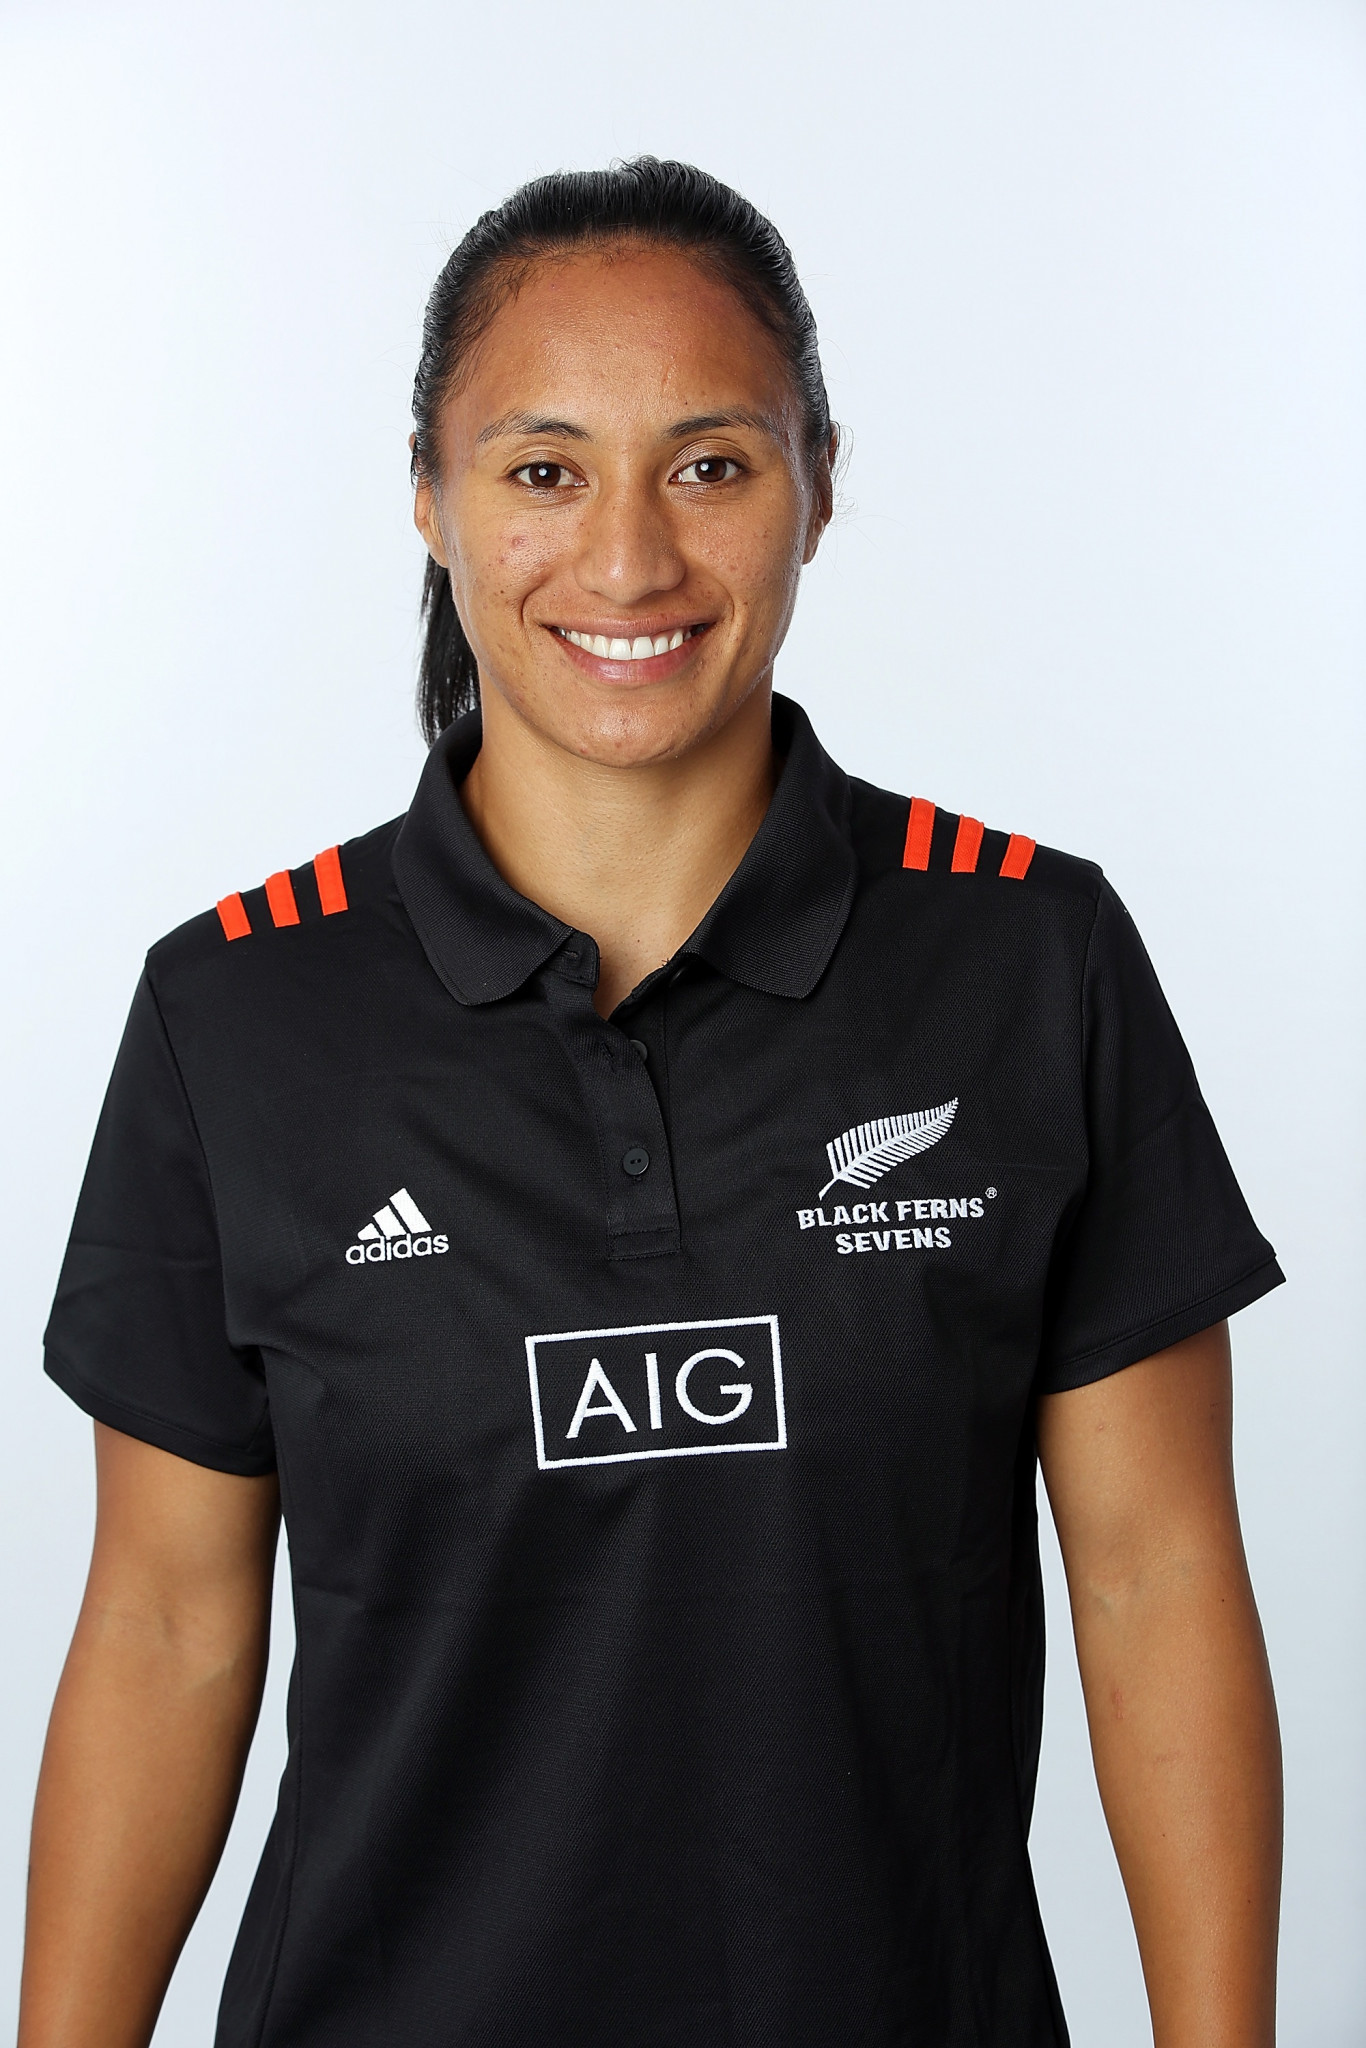 Kat Whata-Simpkins has been ruled out of New Zealand's women's rugby sevens team with a leg injury ©Getty Images